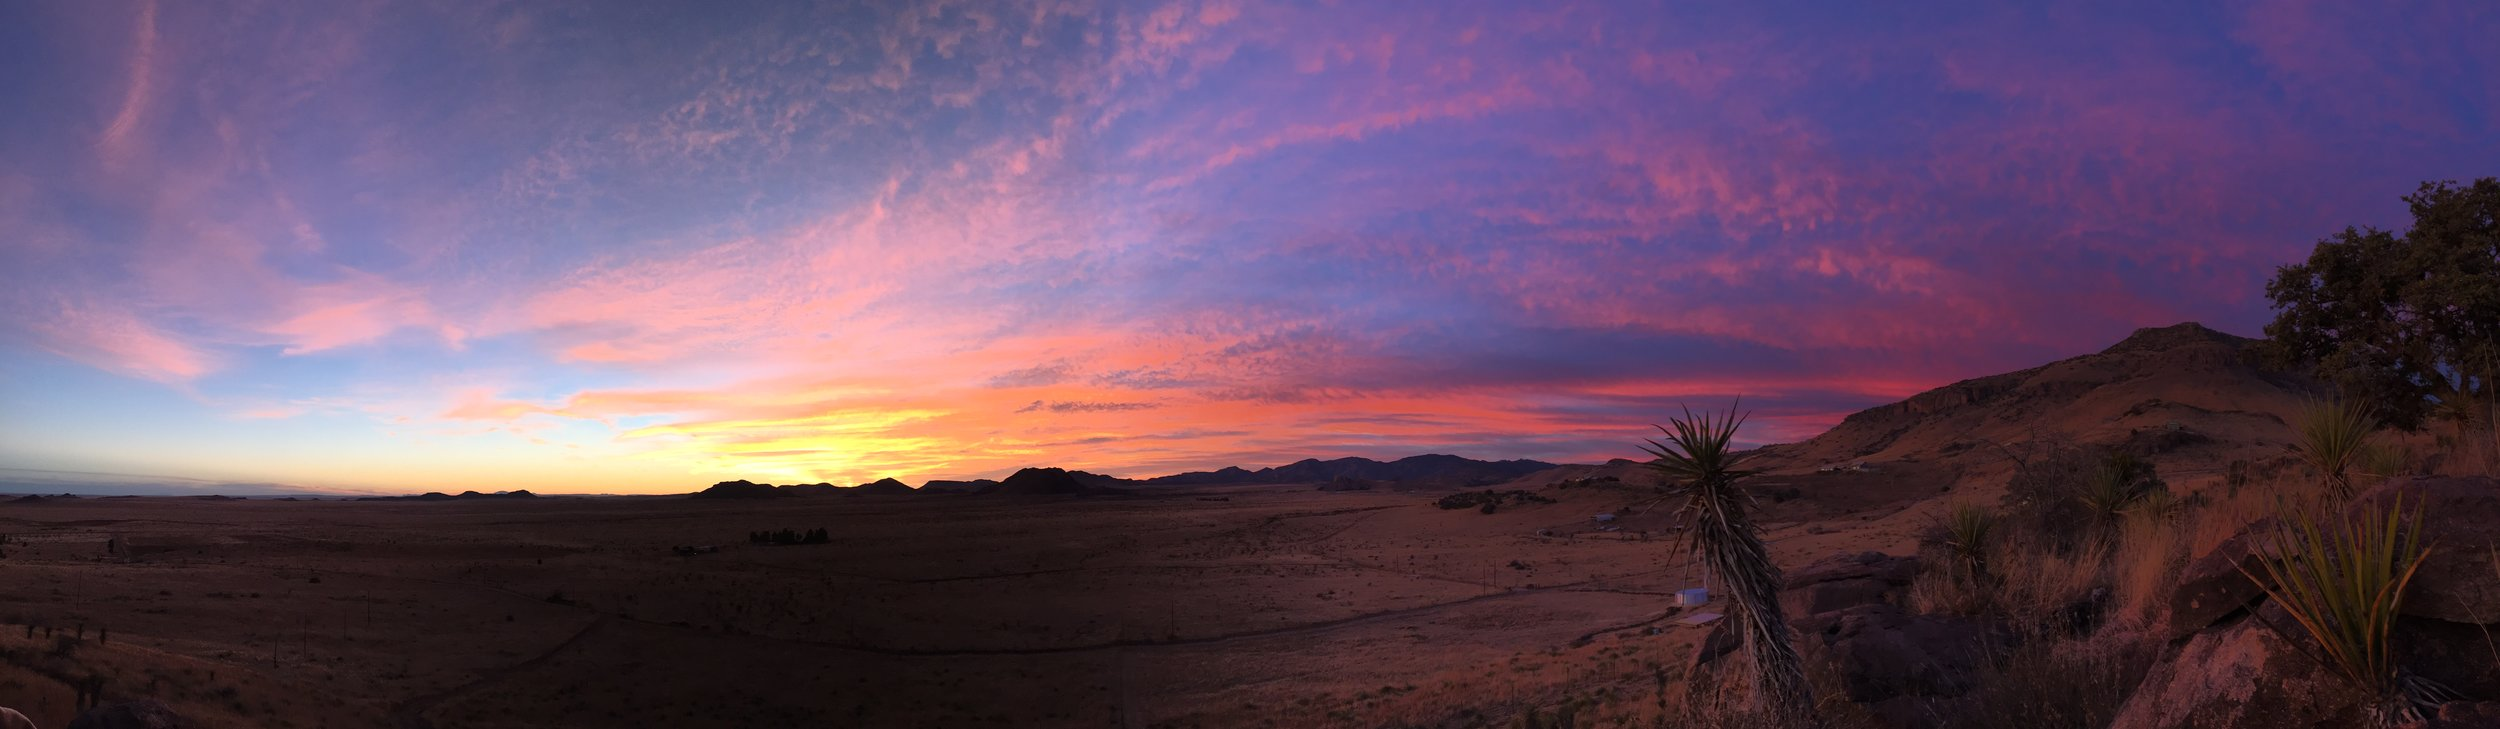 This was one of the best sunsets I have ever seen.